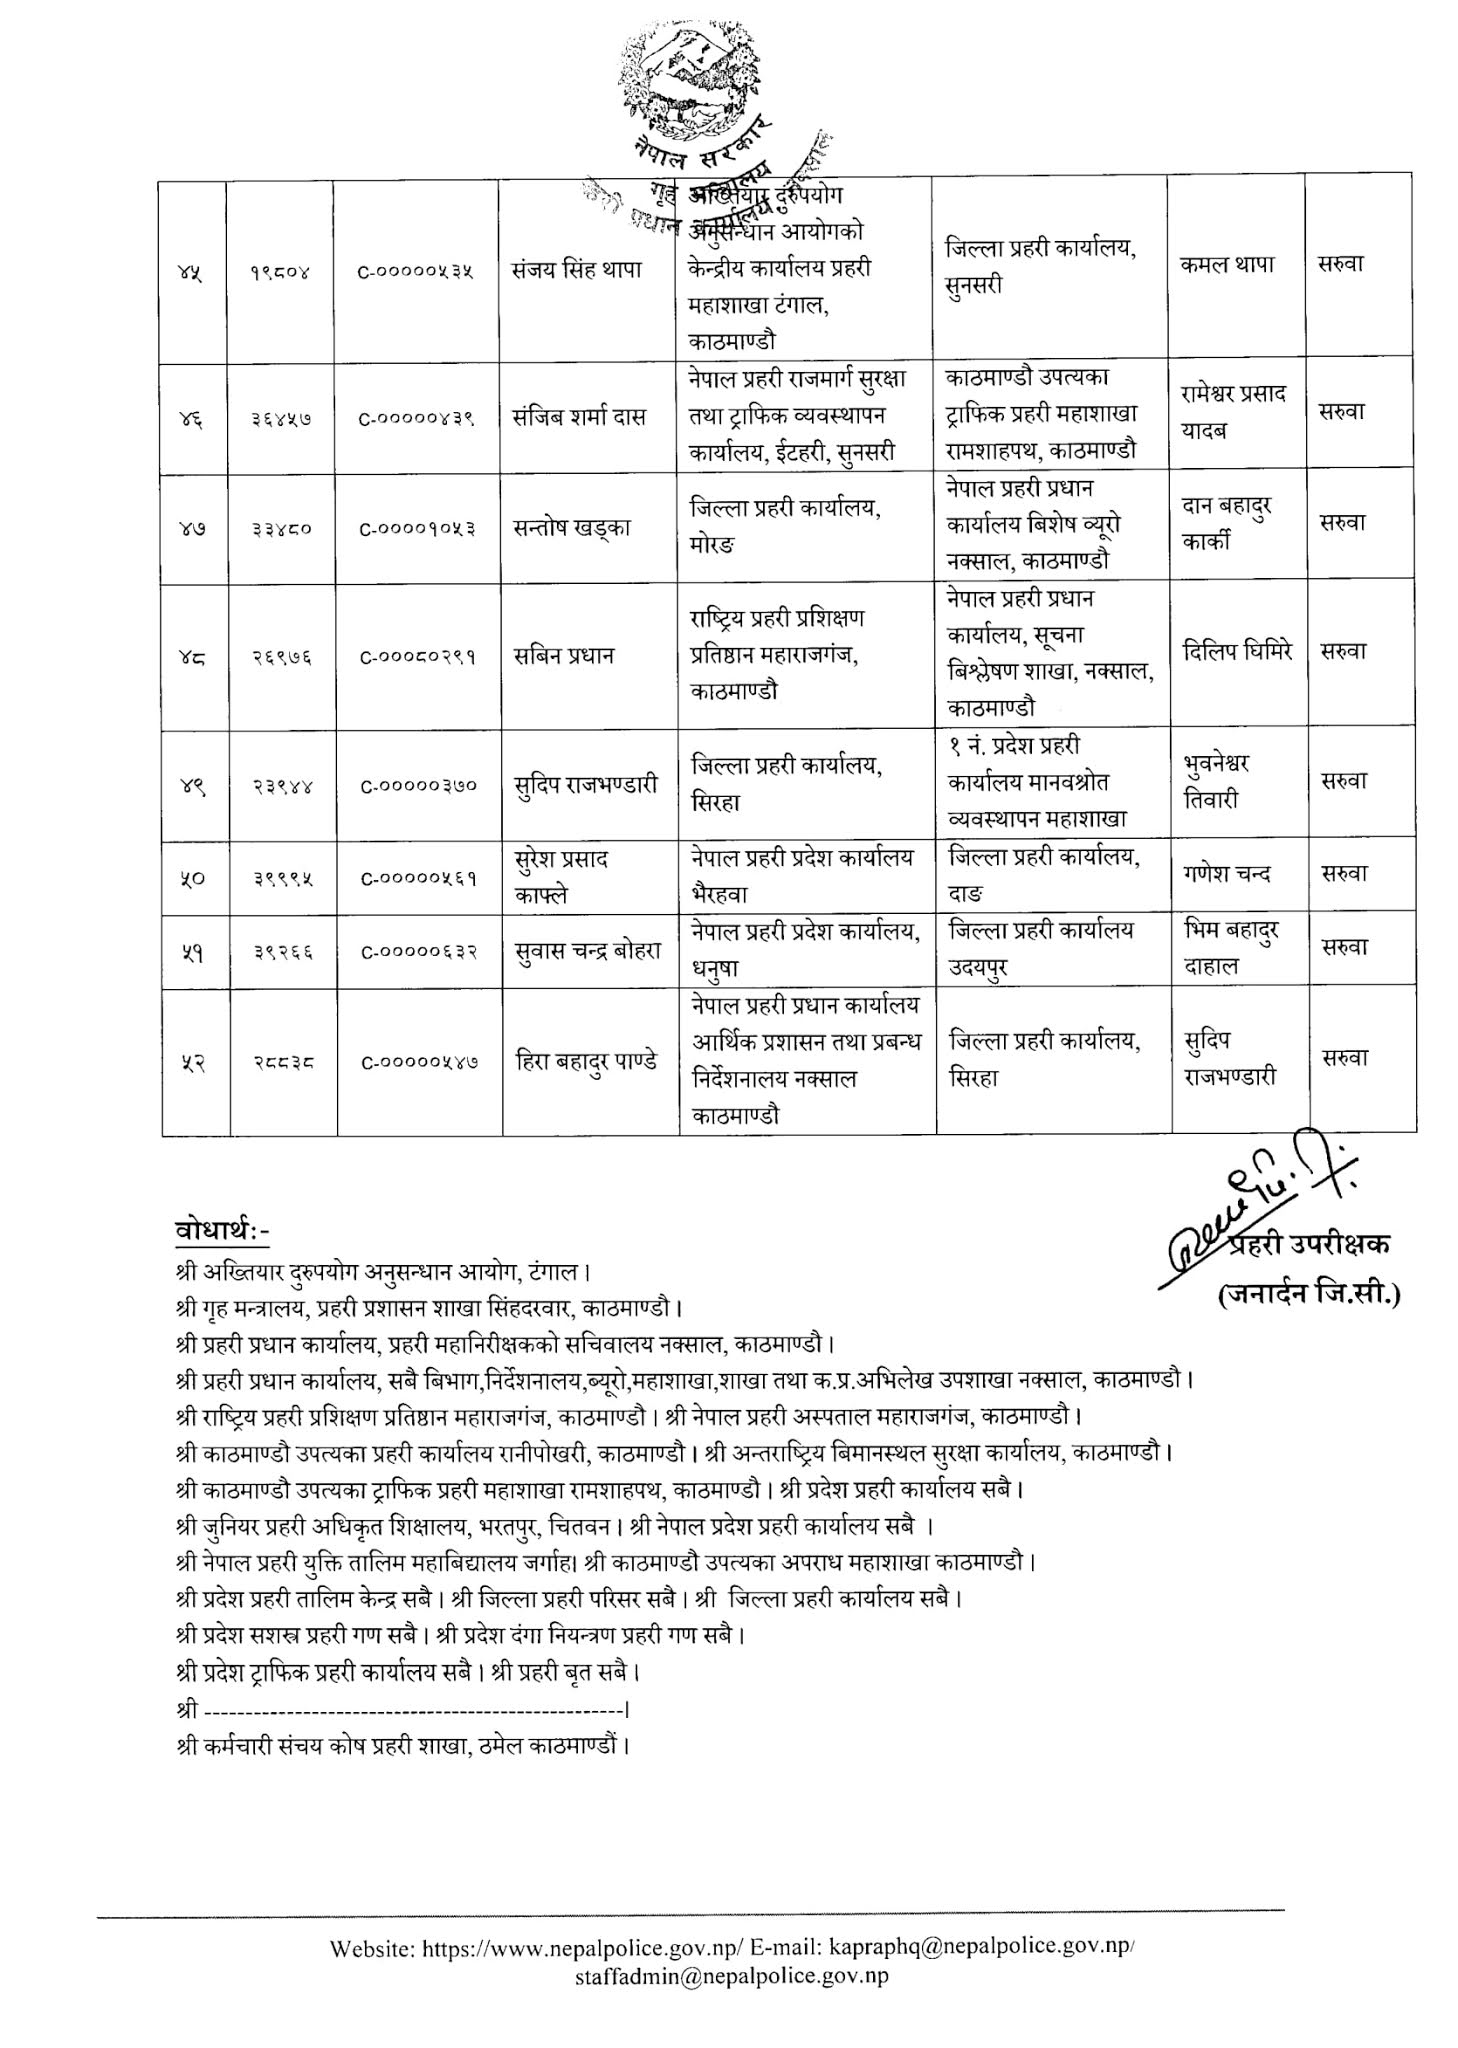 Nepal Police - Transfer List of 52 Superintendent of Nepal Police (SP)